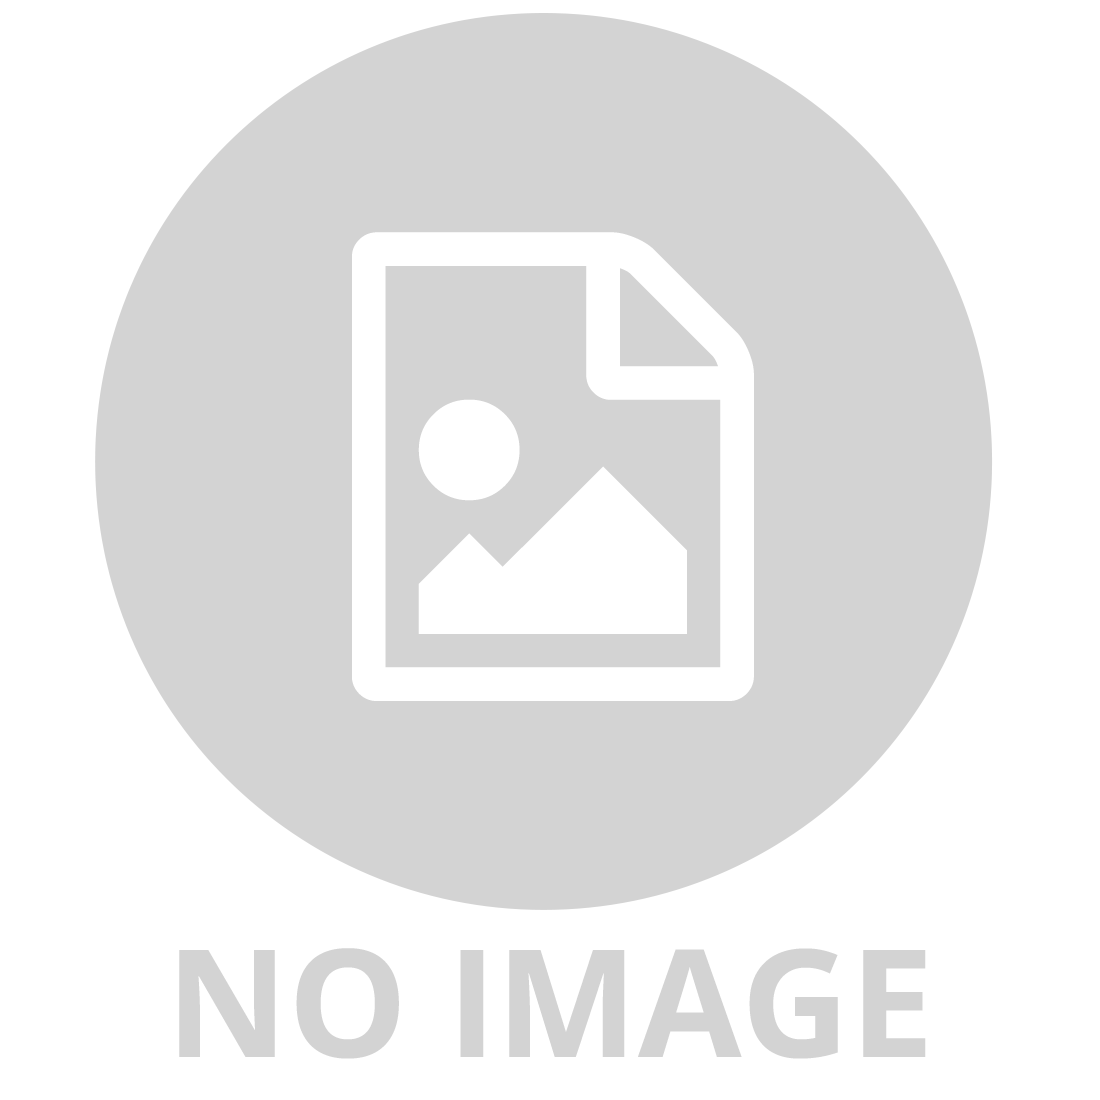 CAT R/C 745 ARTICULATED TRUCK 1:24 CONSTRUCTION